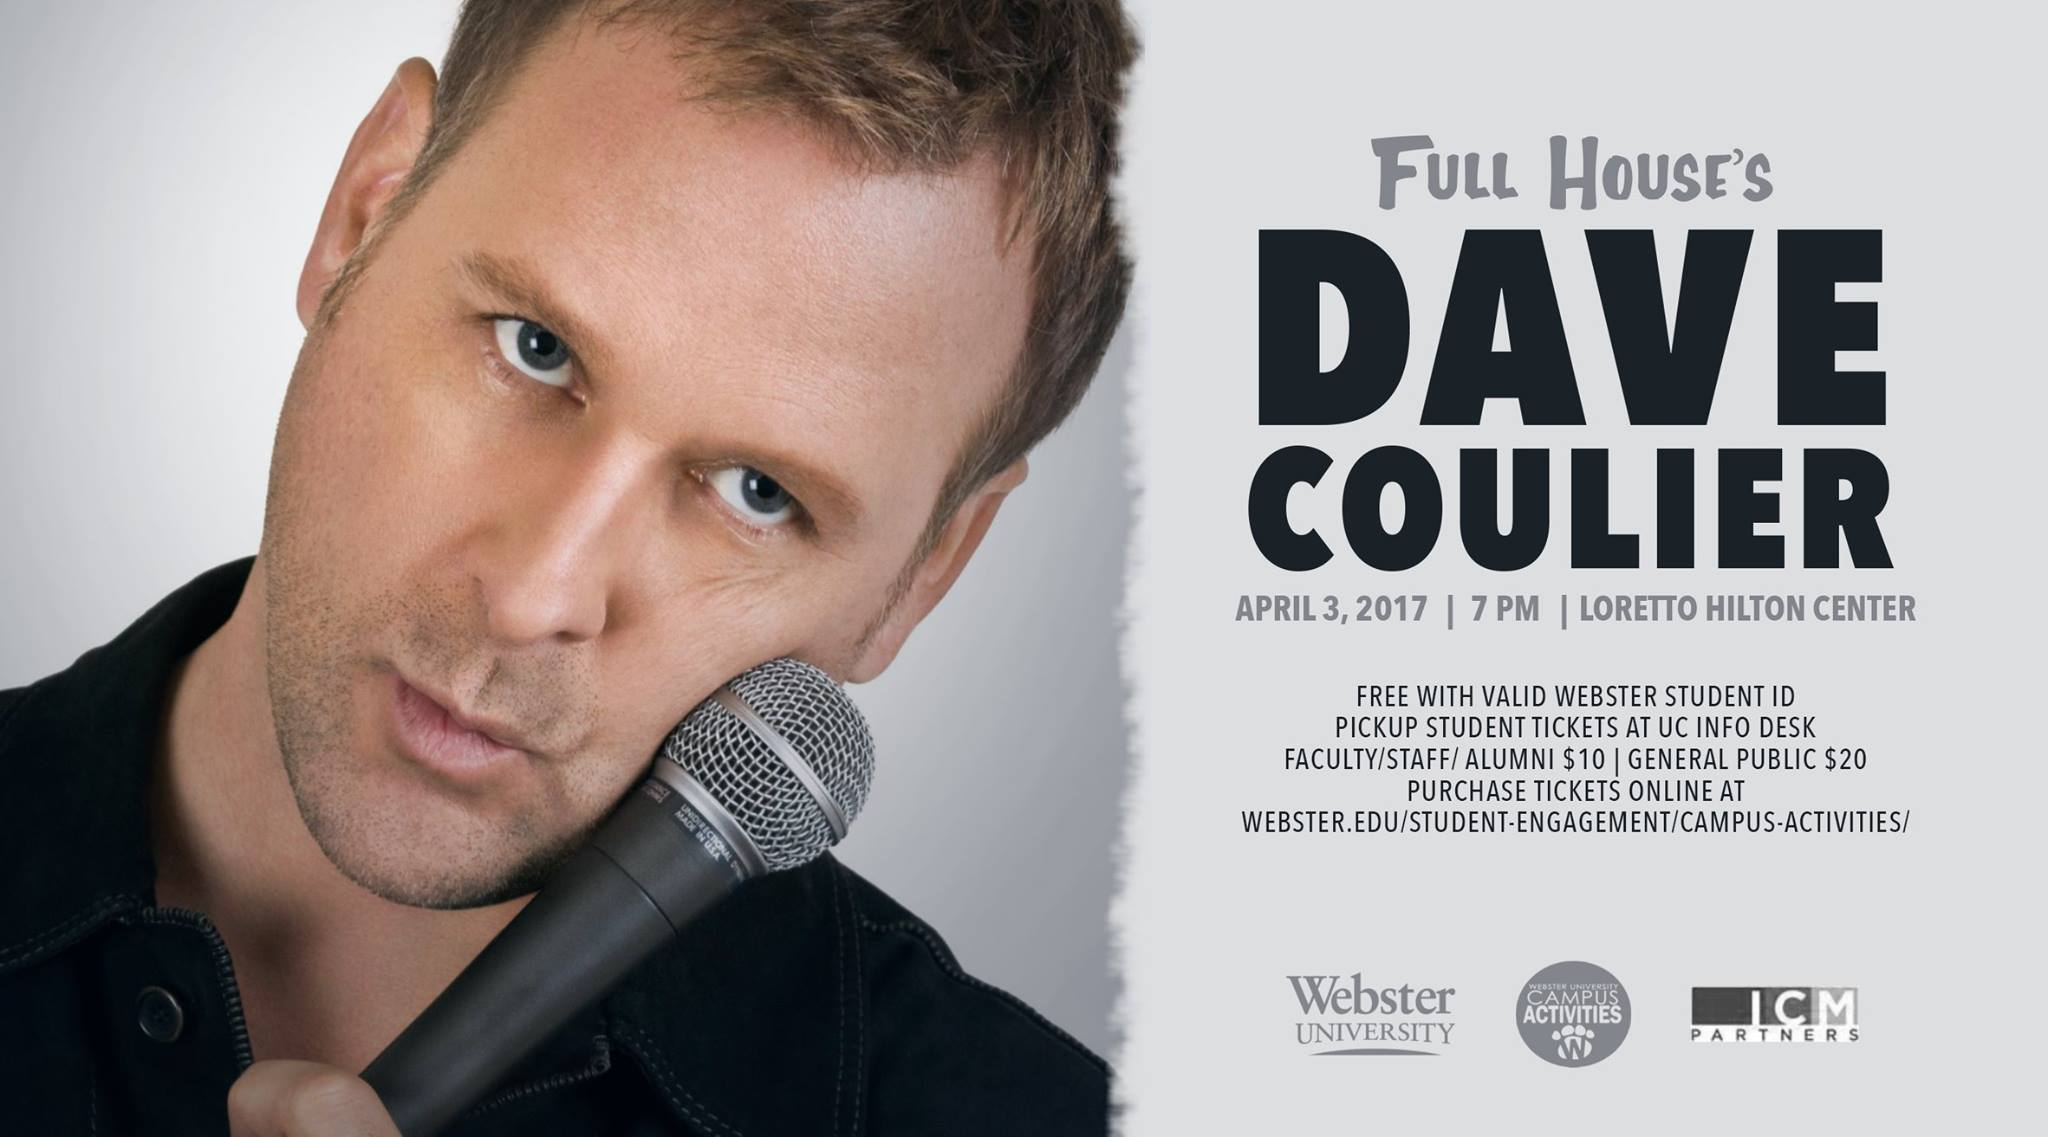 Dave Coulier Webster University campus event